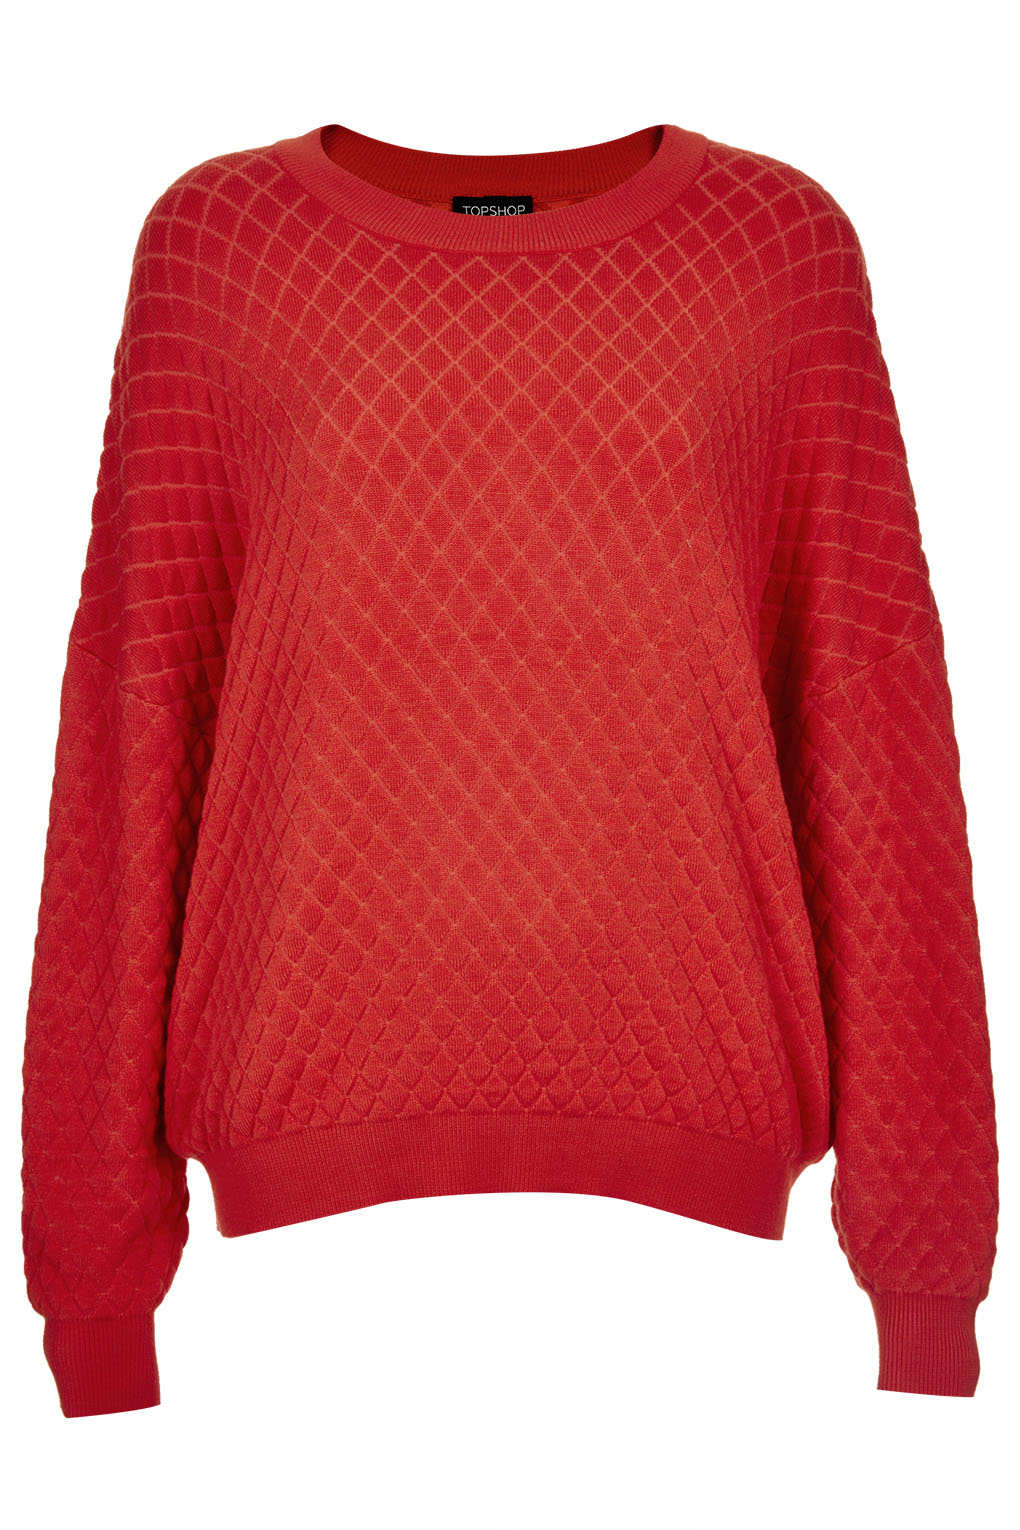 Topshop Knitted Quilted Sweater in Red | Lyst